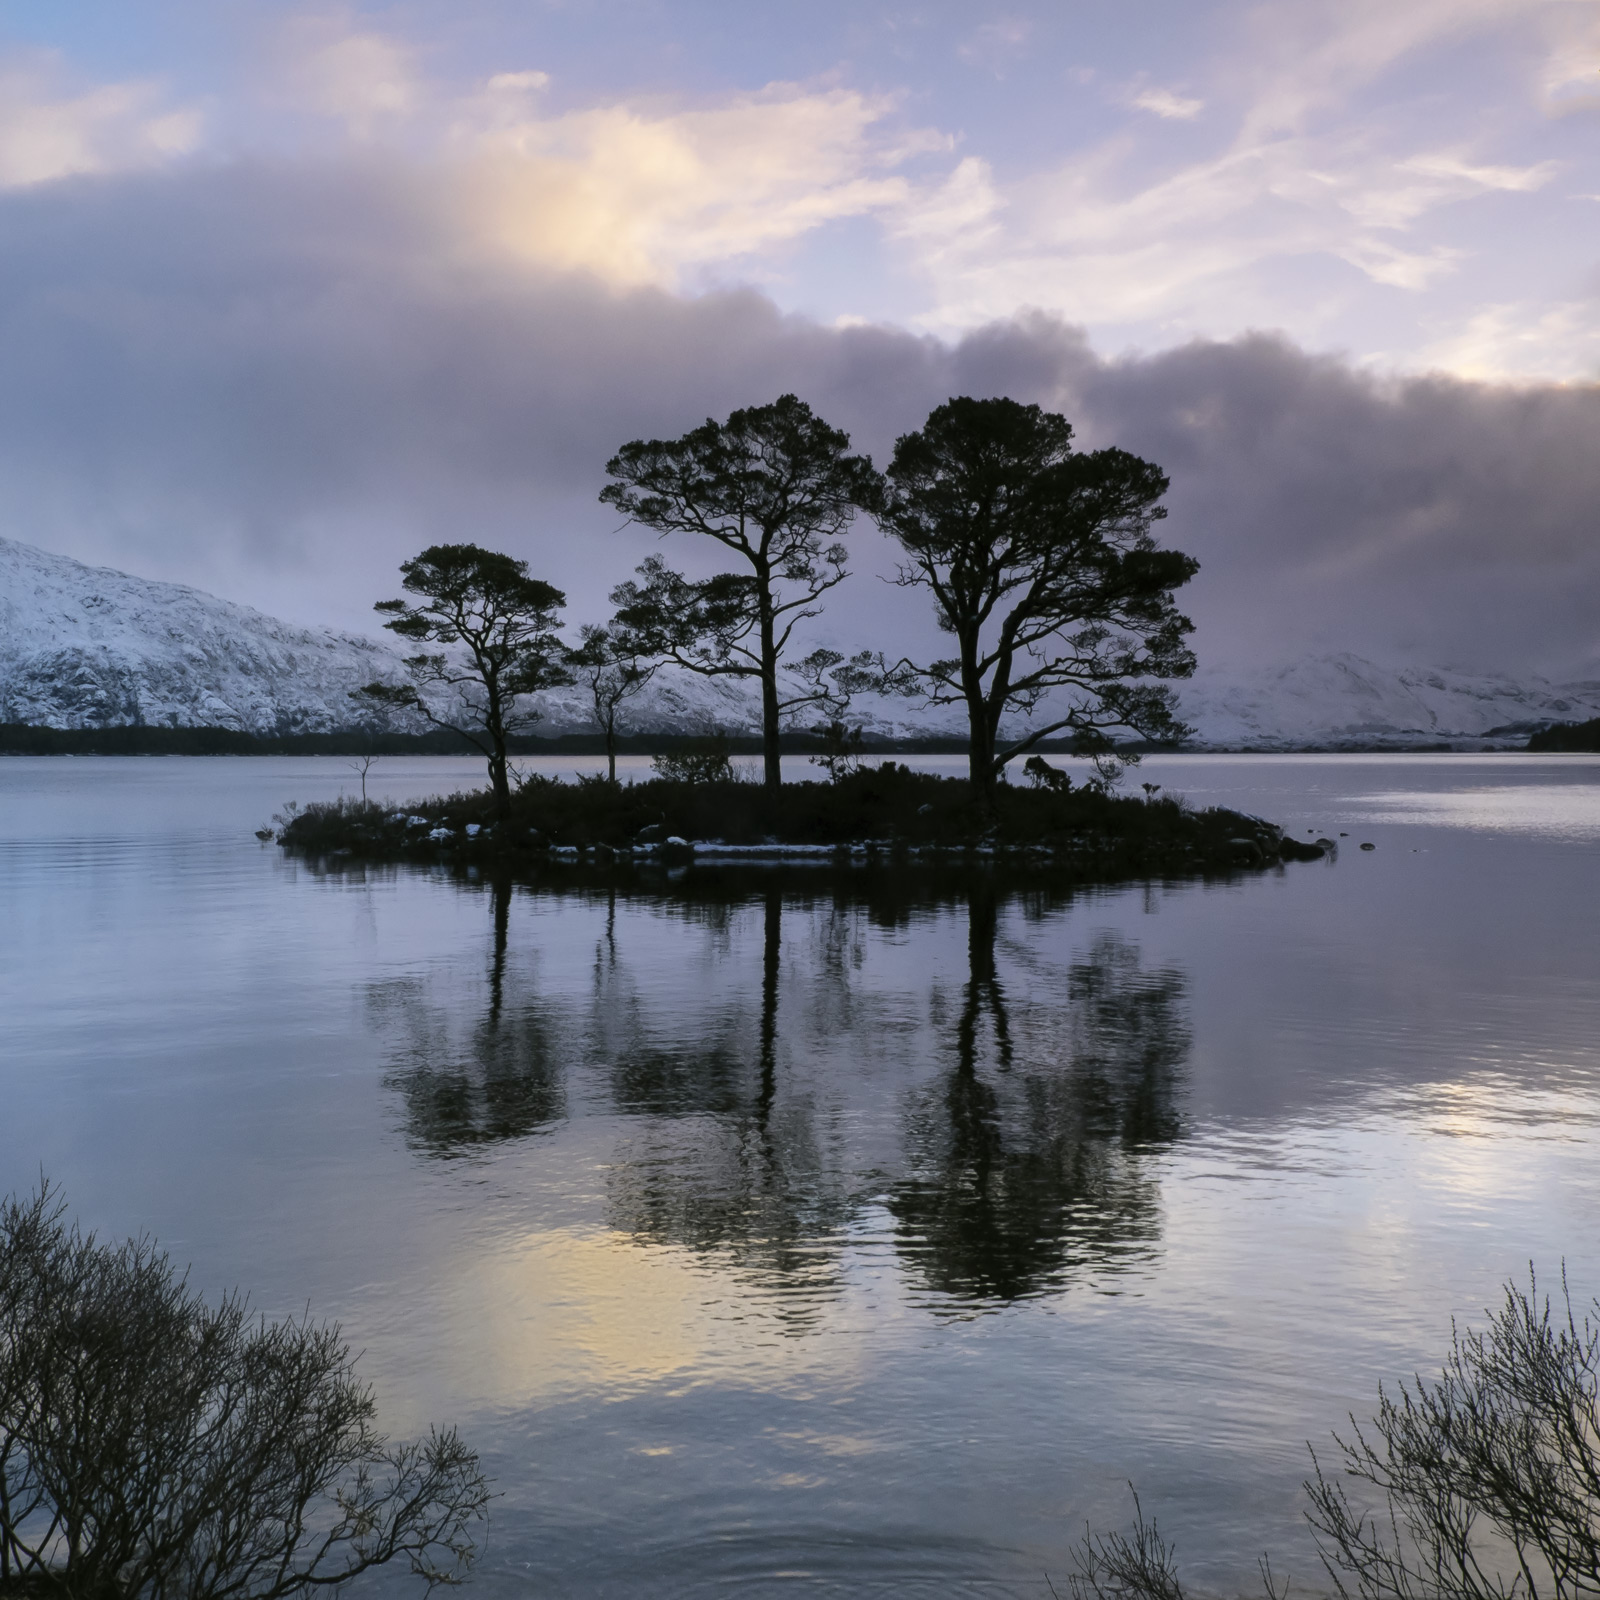 The island pines at Slattadale are perfectly positioned against the lofty Torridon mountain of Slioch some what subdued at present...